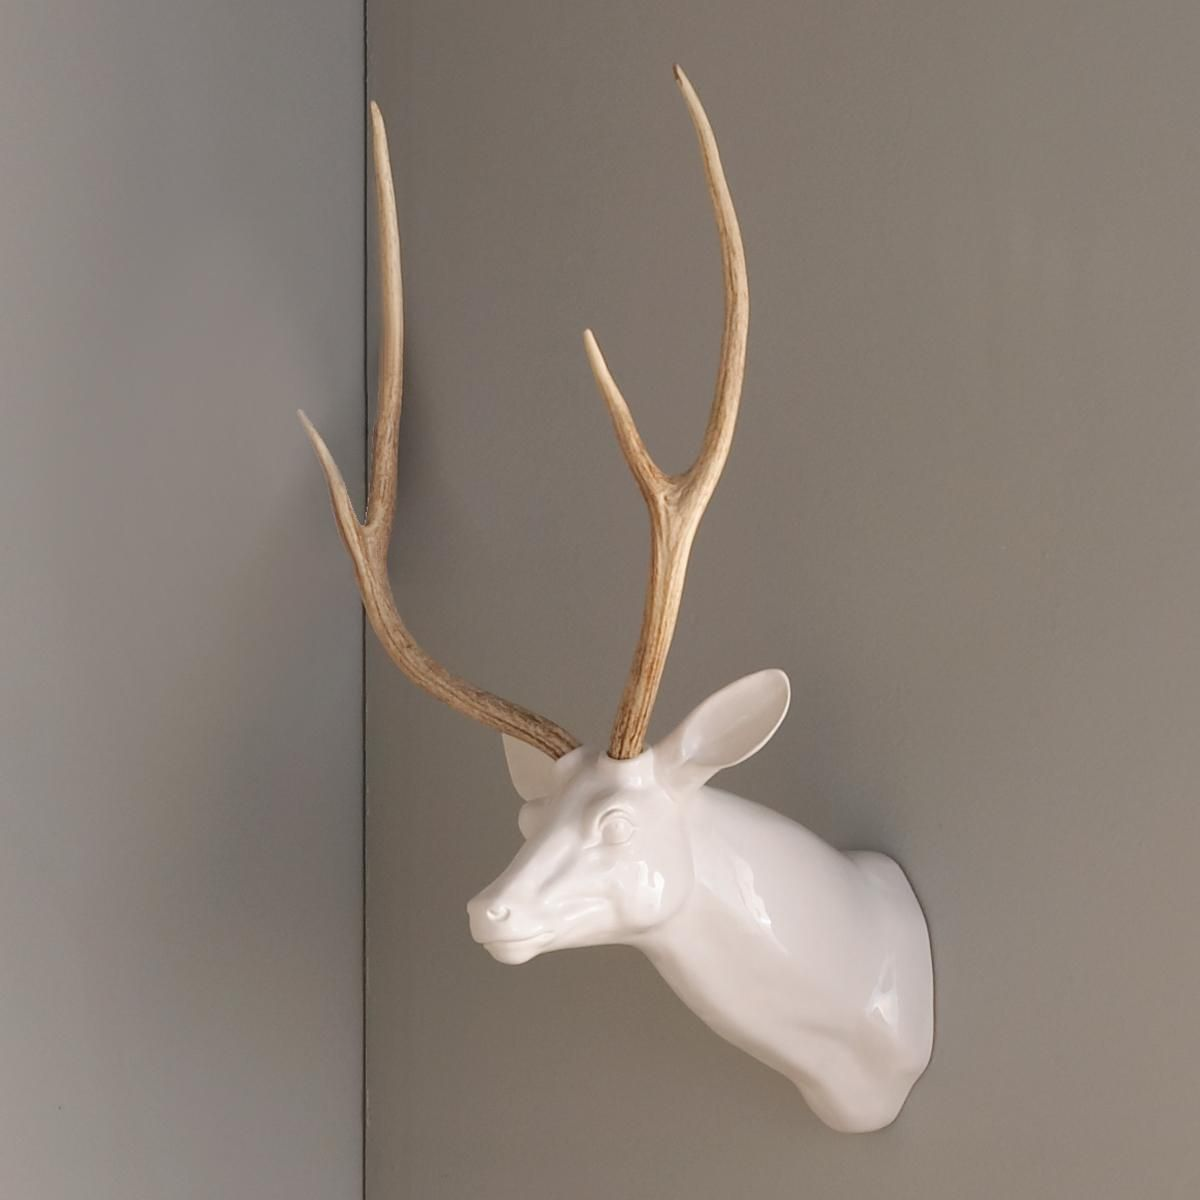 White Porcelain Deer Head Decorative Ceramic Wall Deer Head Erica Cerulo Cerulo